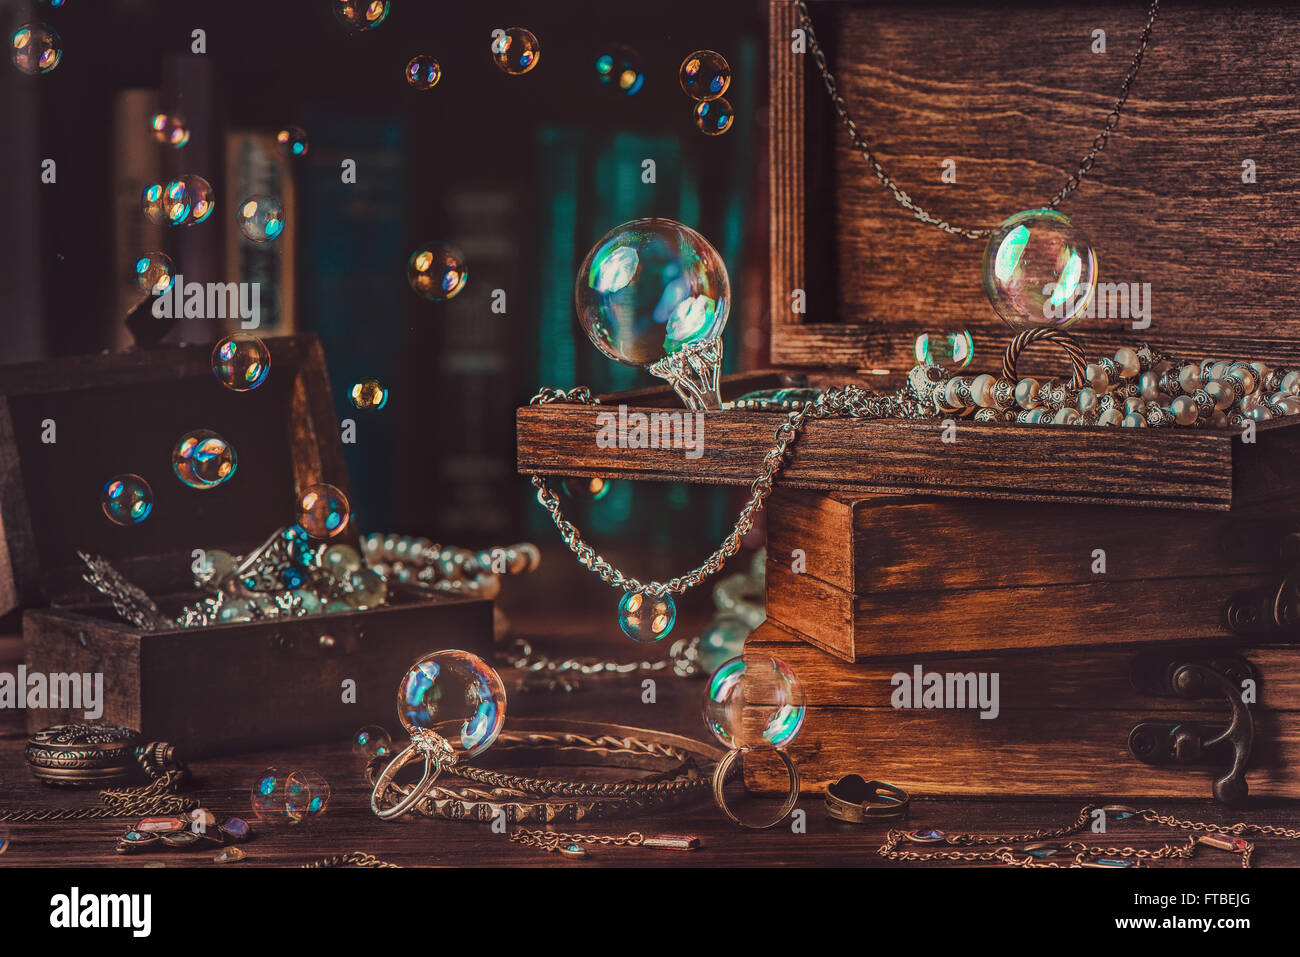 Jewelry box - Stock Image